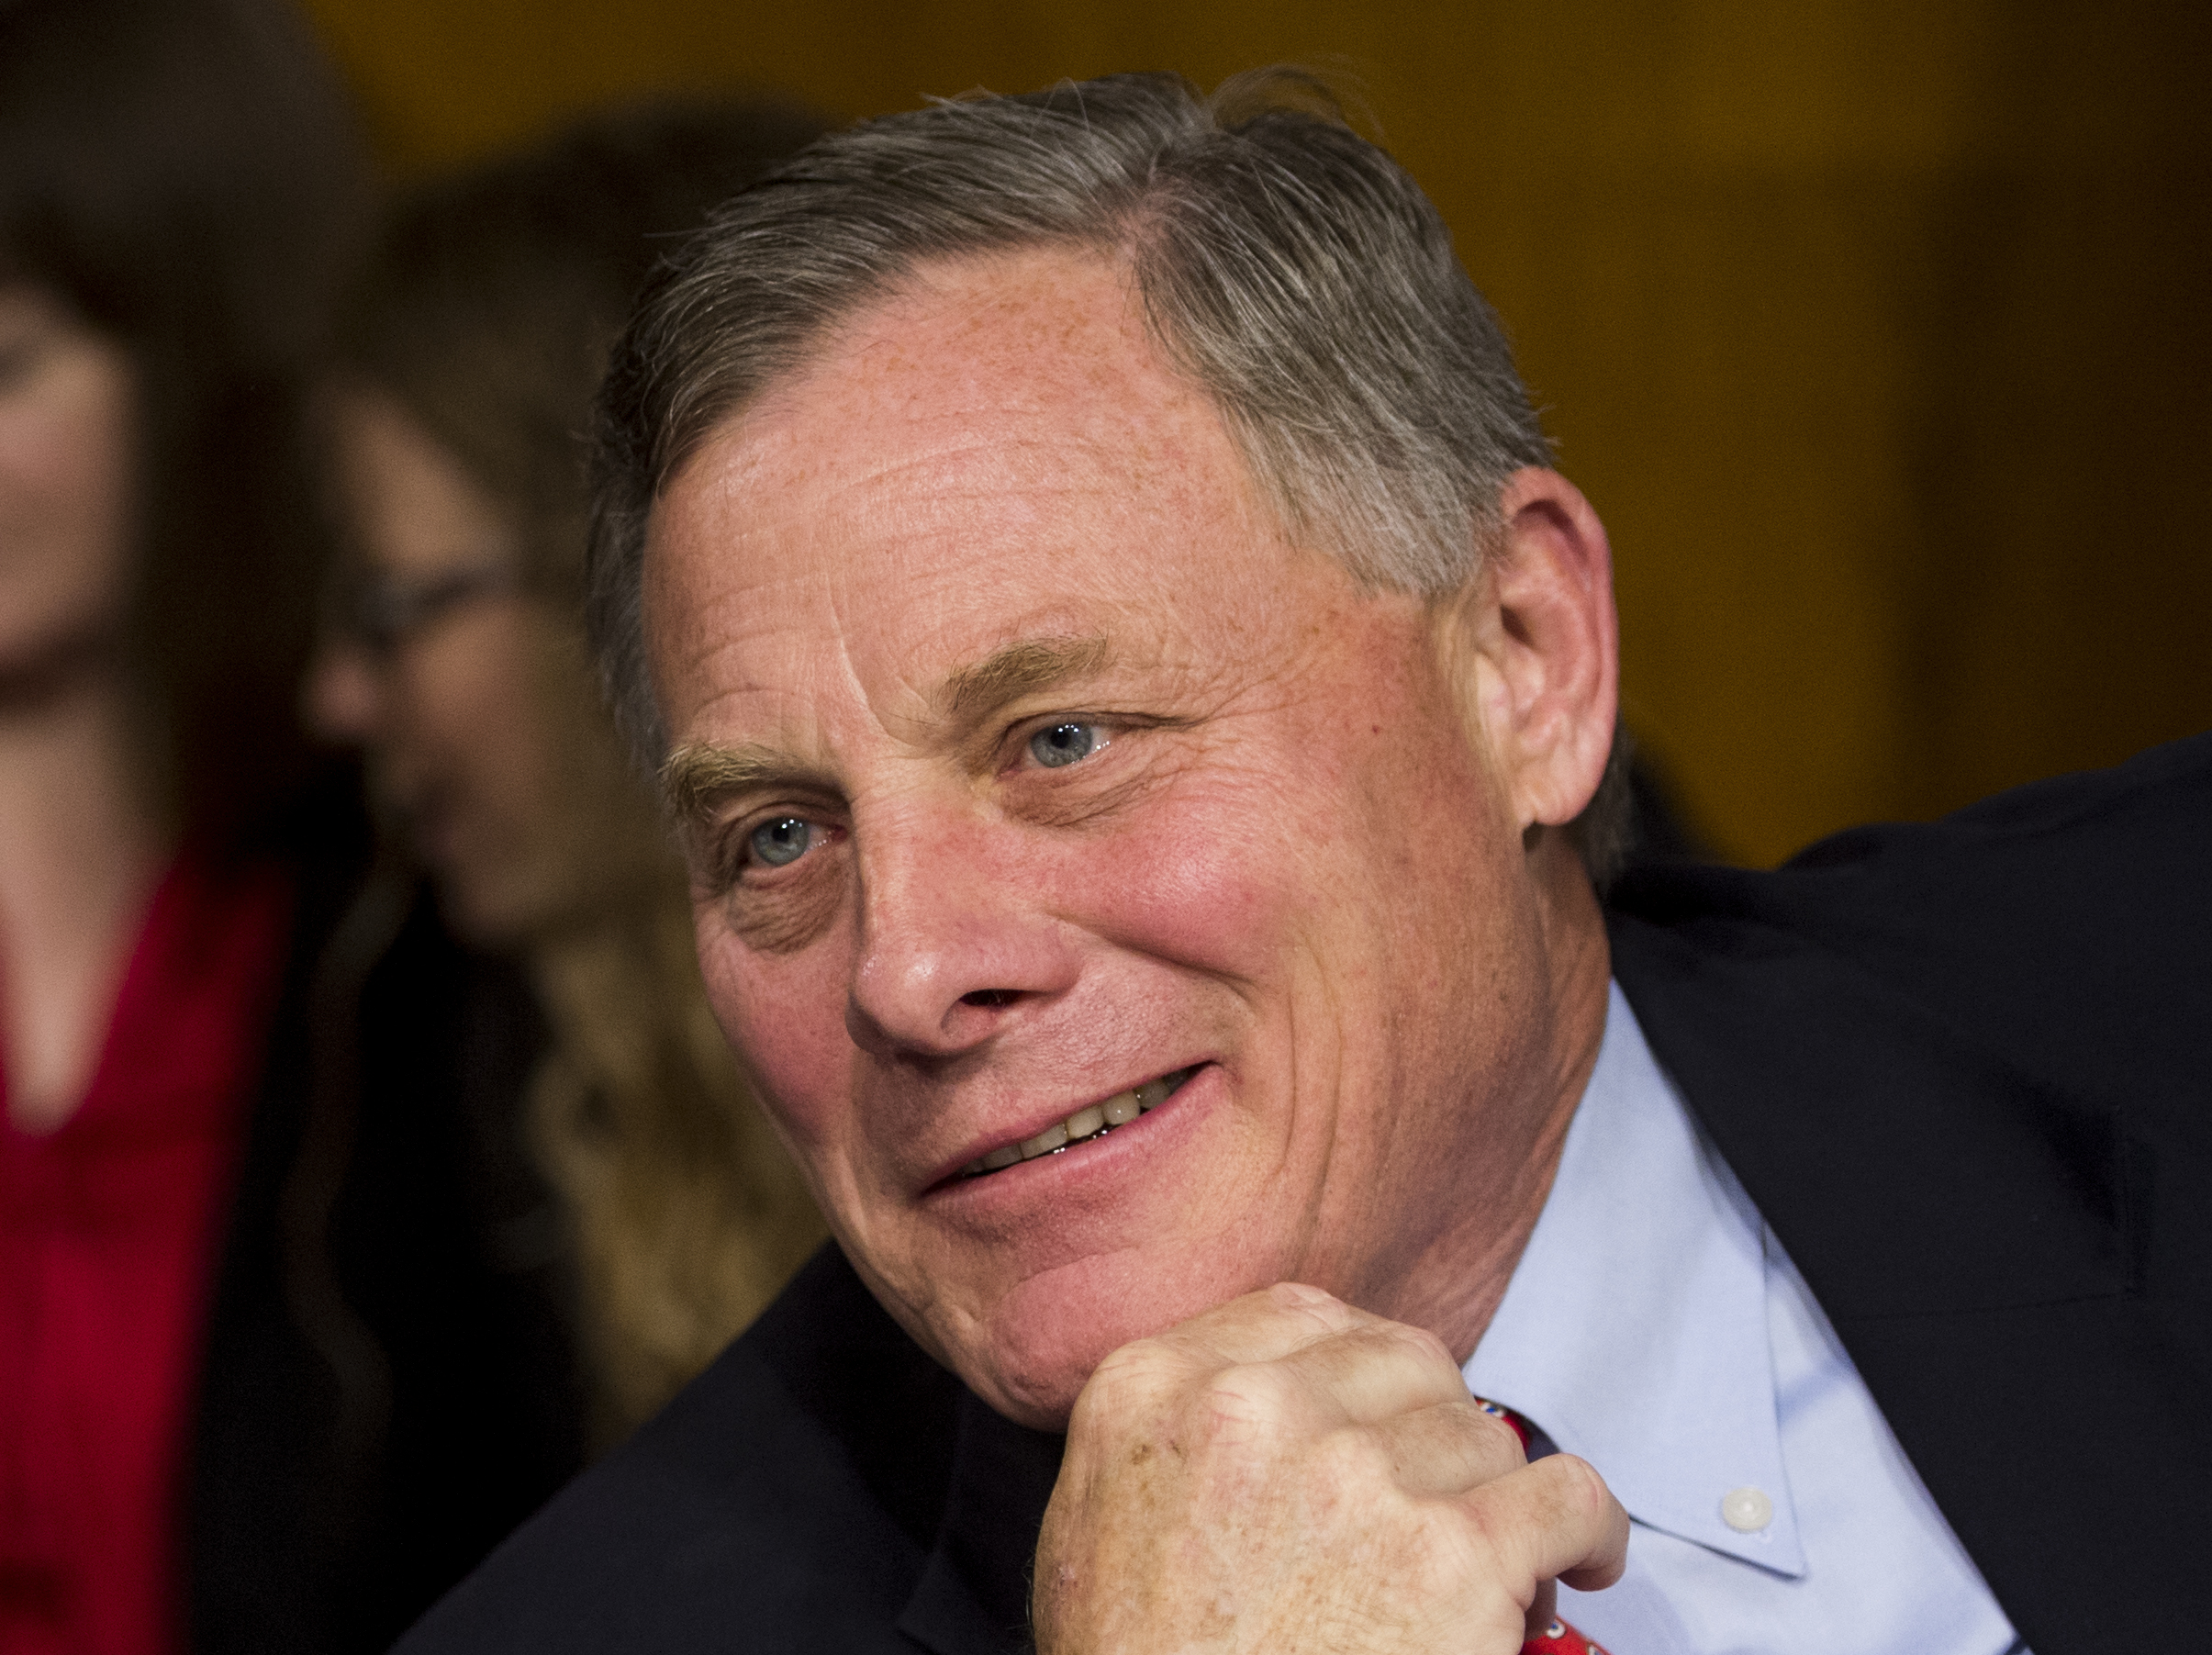 Senator Richard Burr, R-N.C., at the Senate hearing on Veteran Affairs, May 15, 2014.